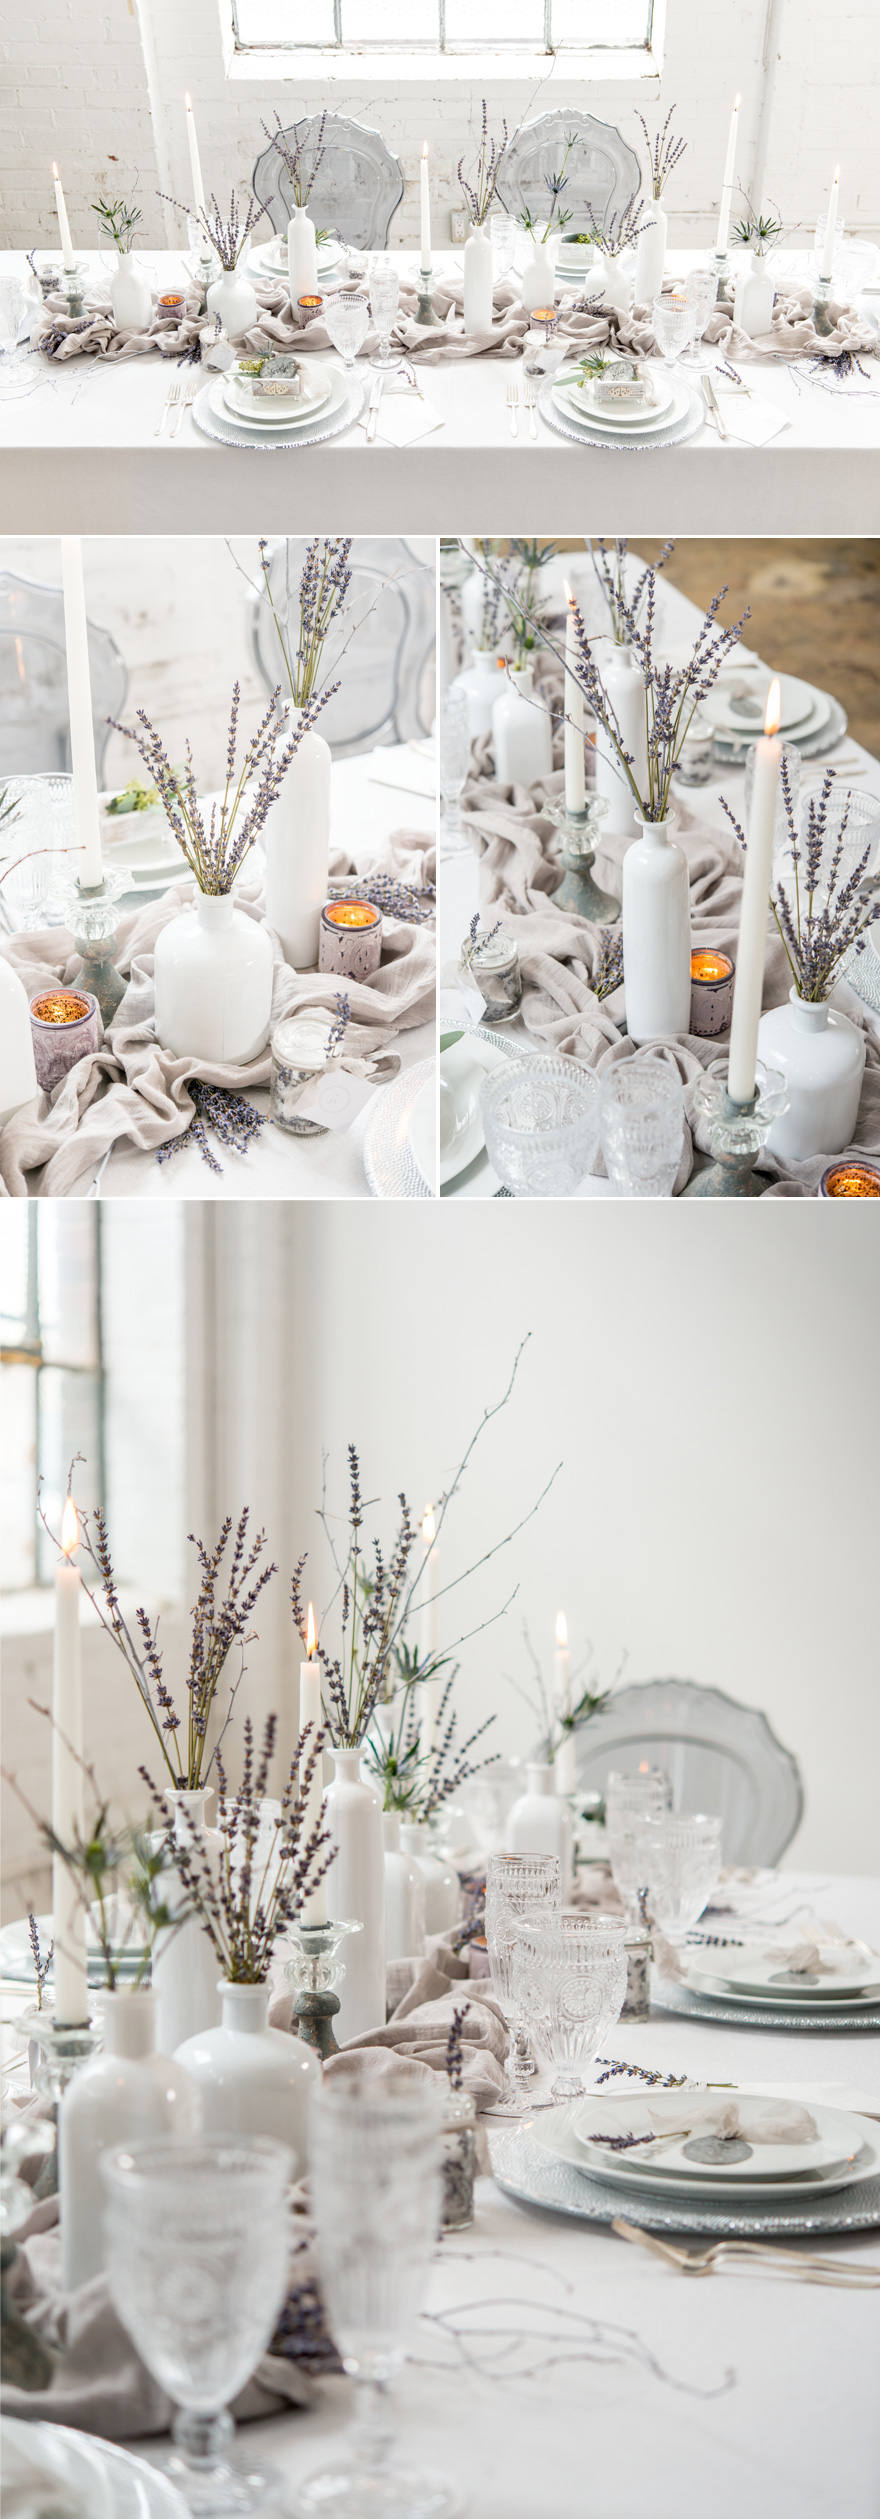 Winter Wedding Reception Decor Ideas and Inspiration White and Lavender | Confetti.co.uk